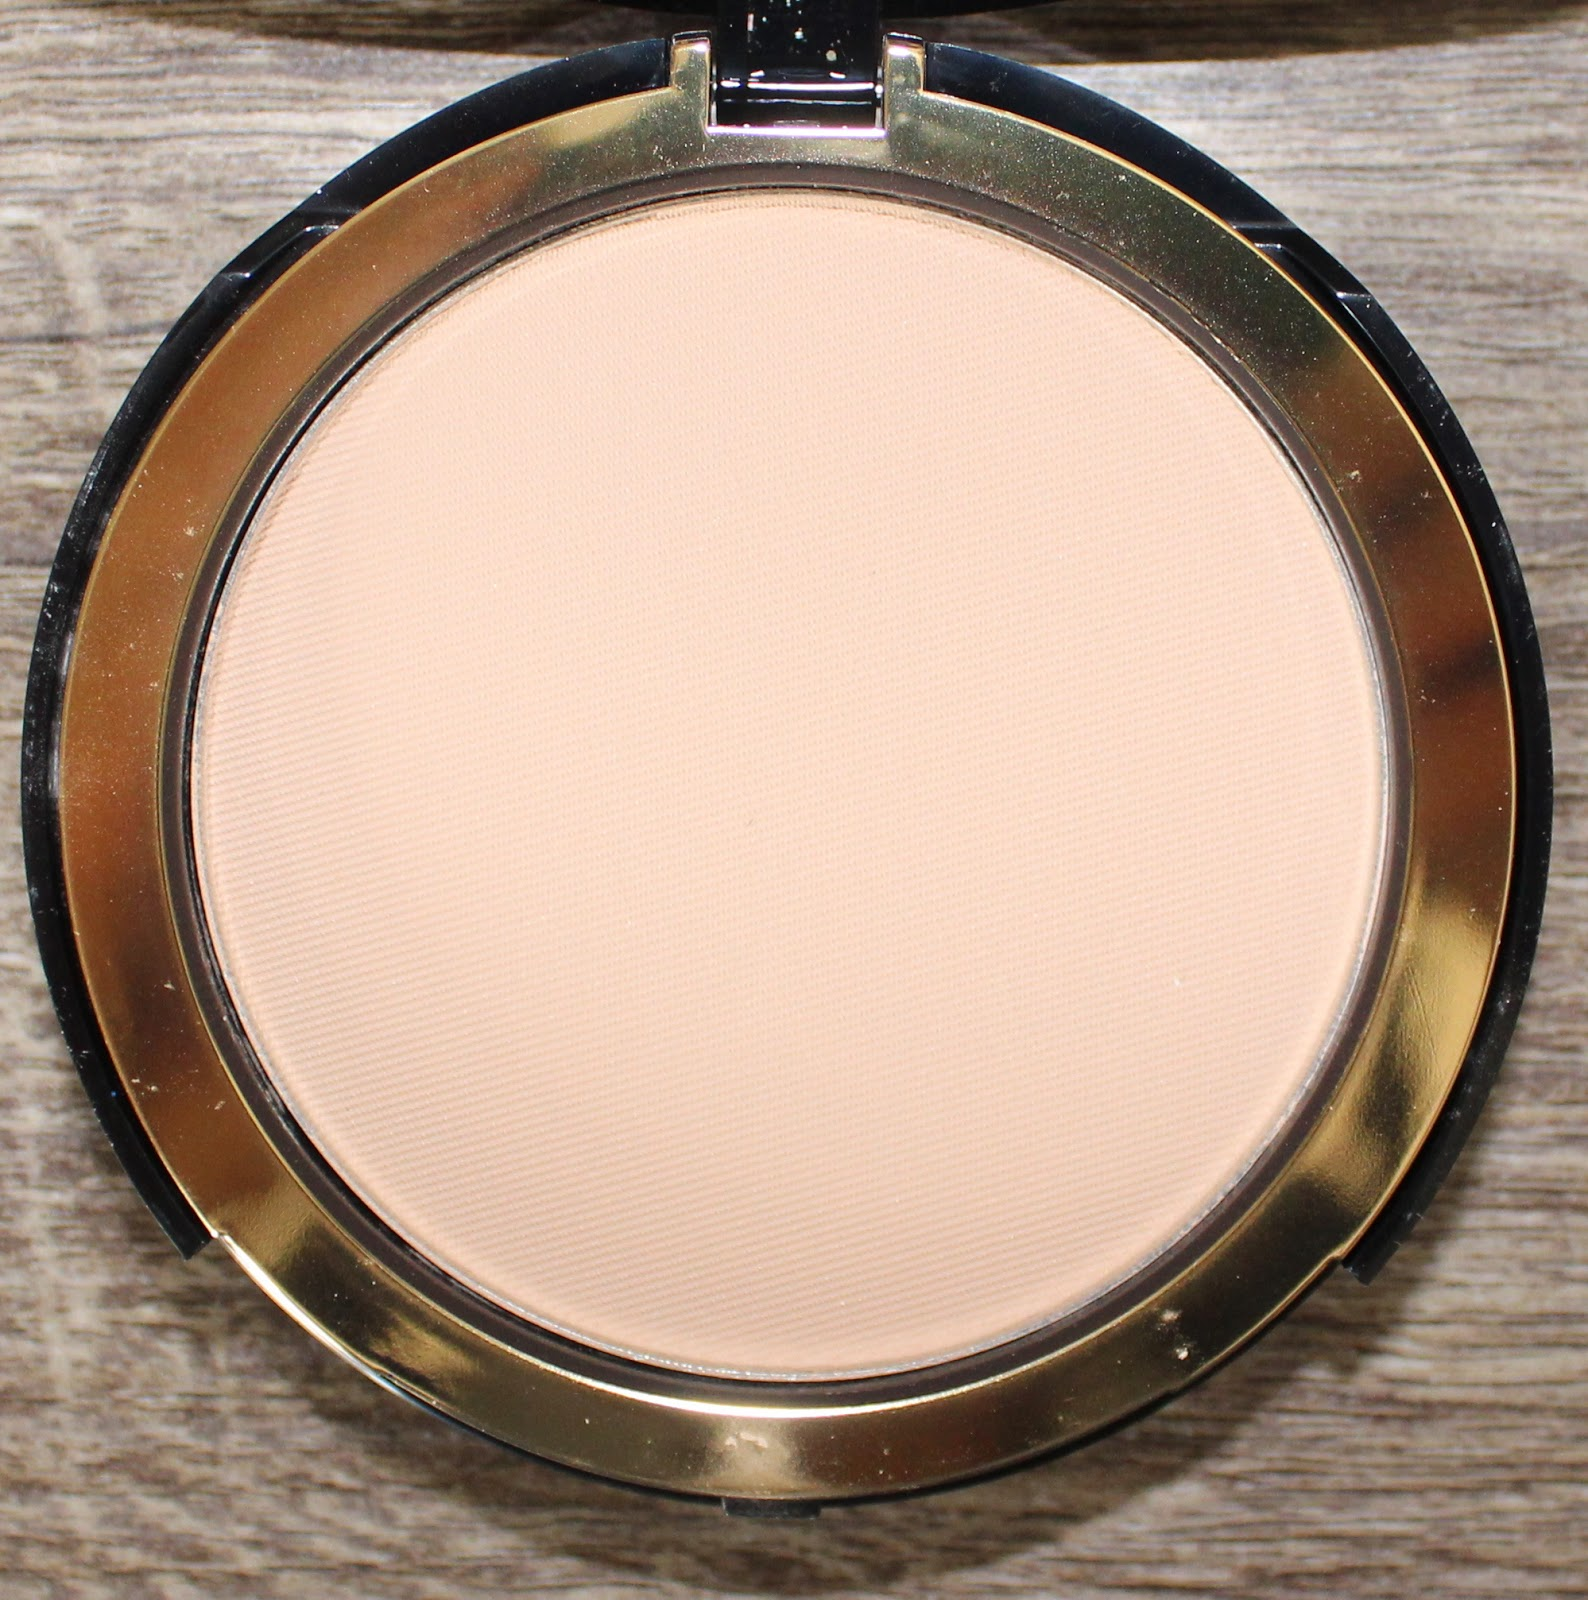 Too Faced Cocoa Powder Foundation in Light